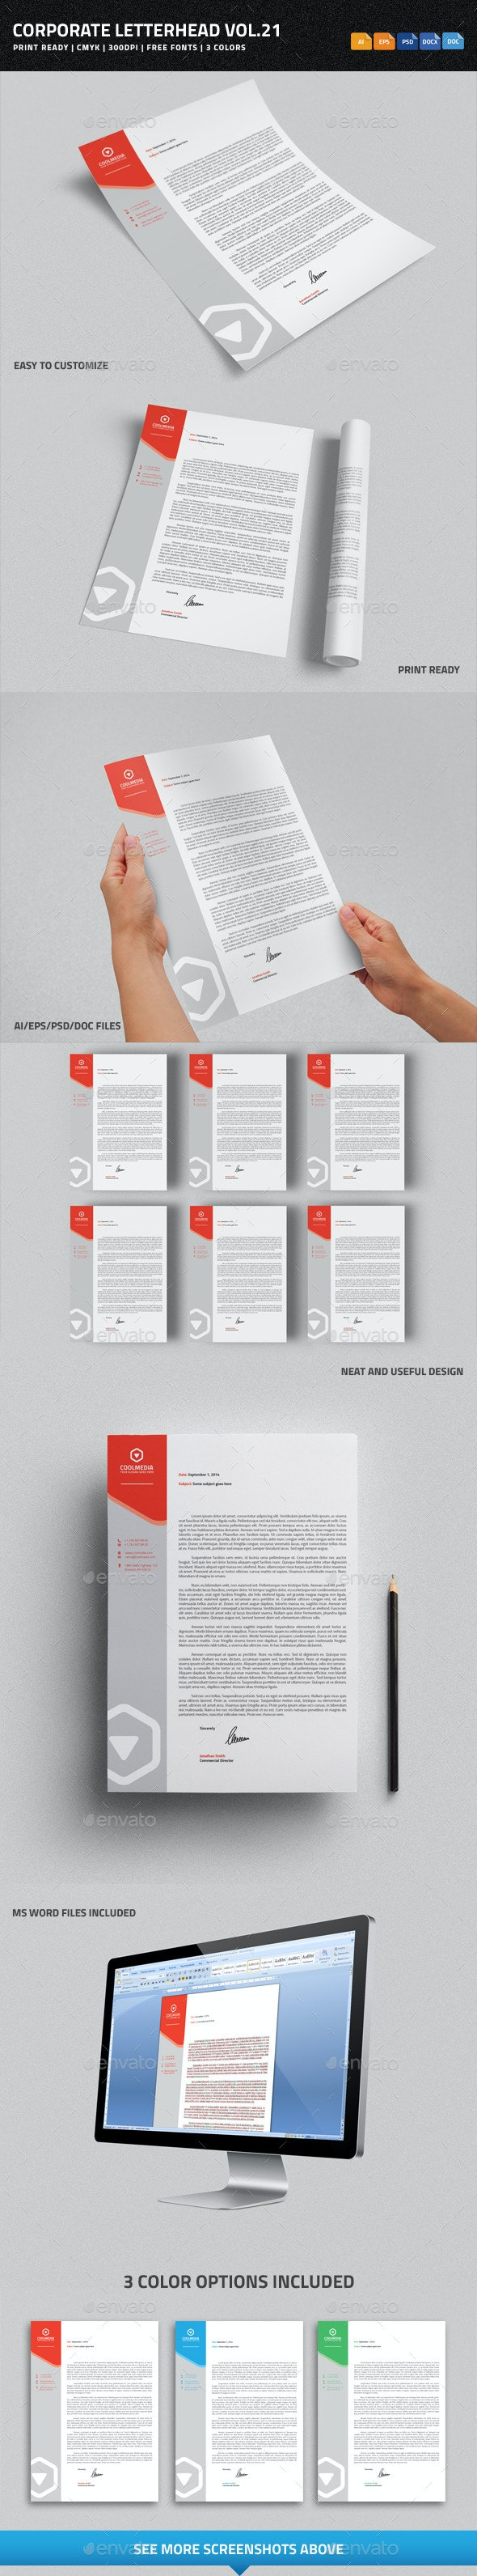 Corporate Letterhead vol.21 with MS Word DOC/DOCX - Stationery Print Templates